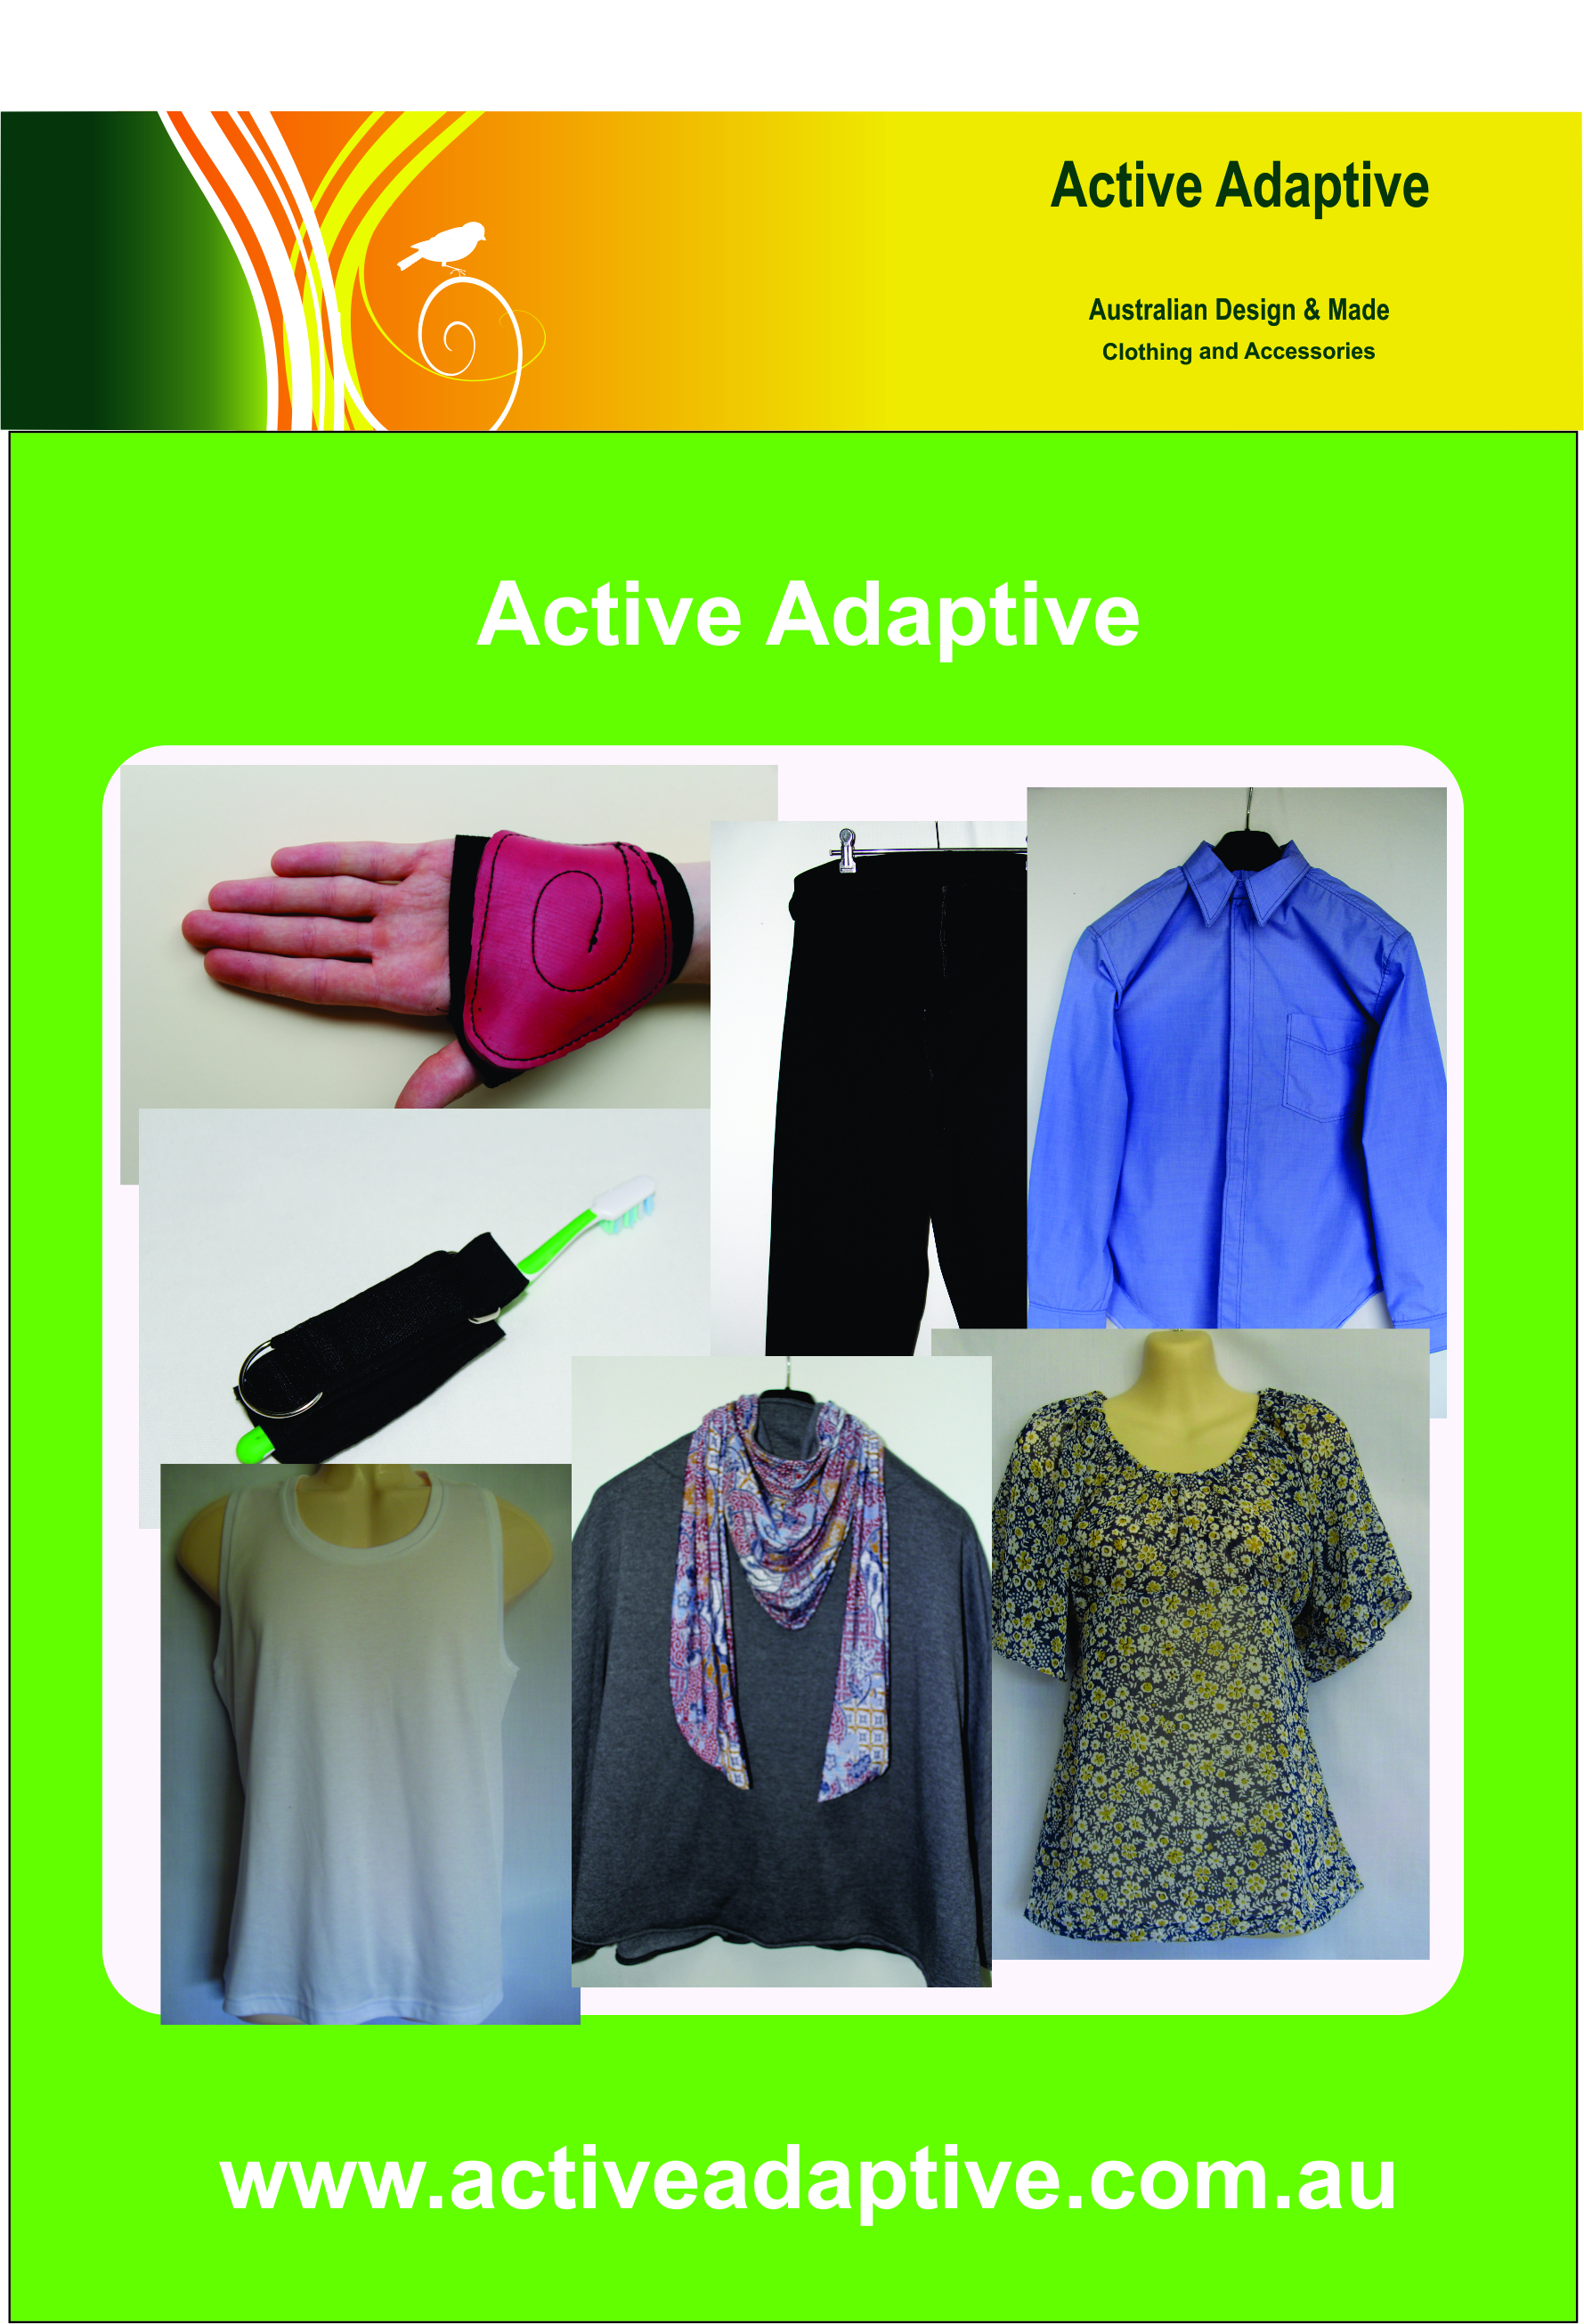 ActiveAdaptive Catalogue Image